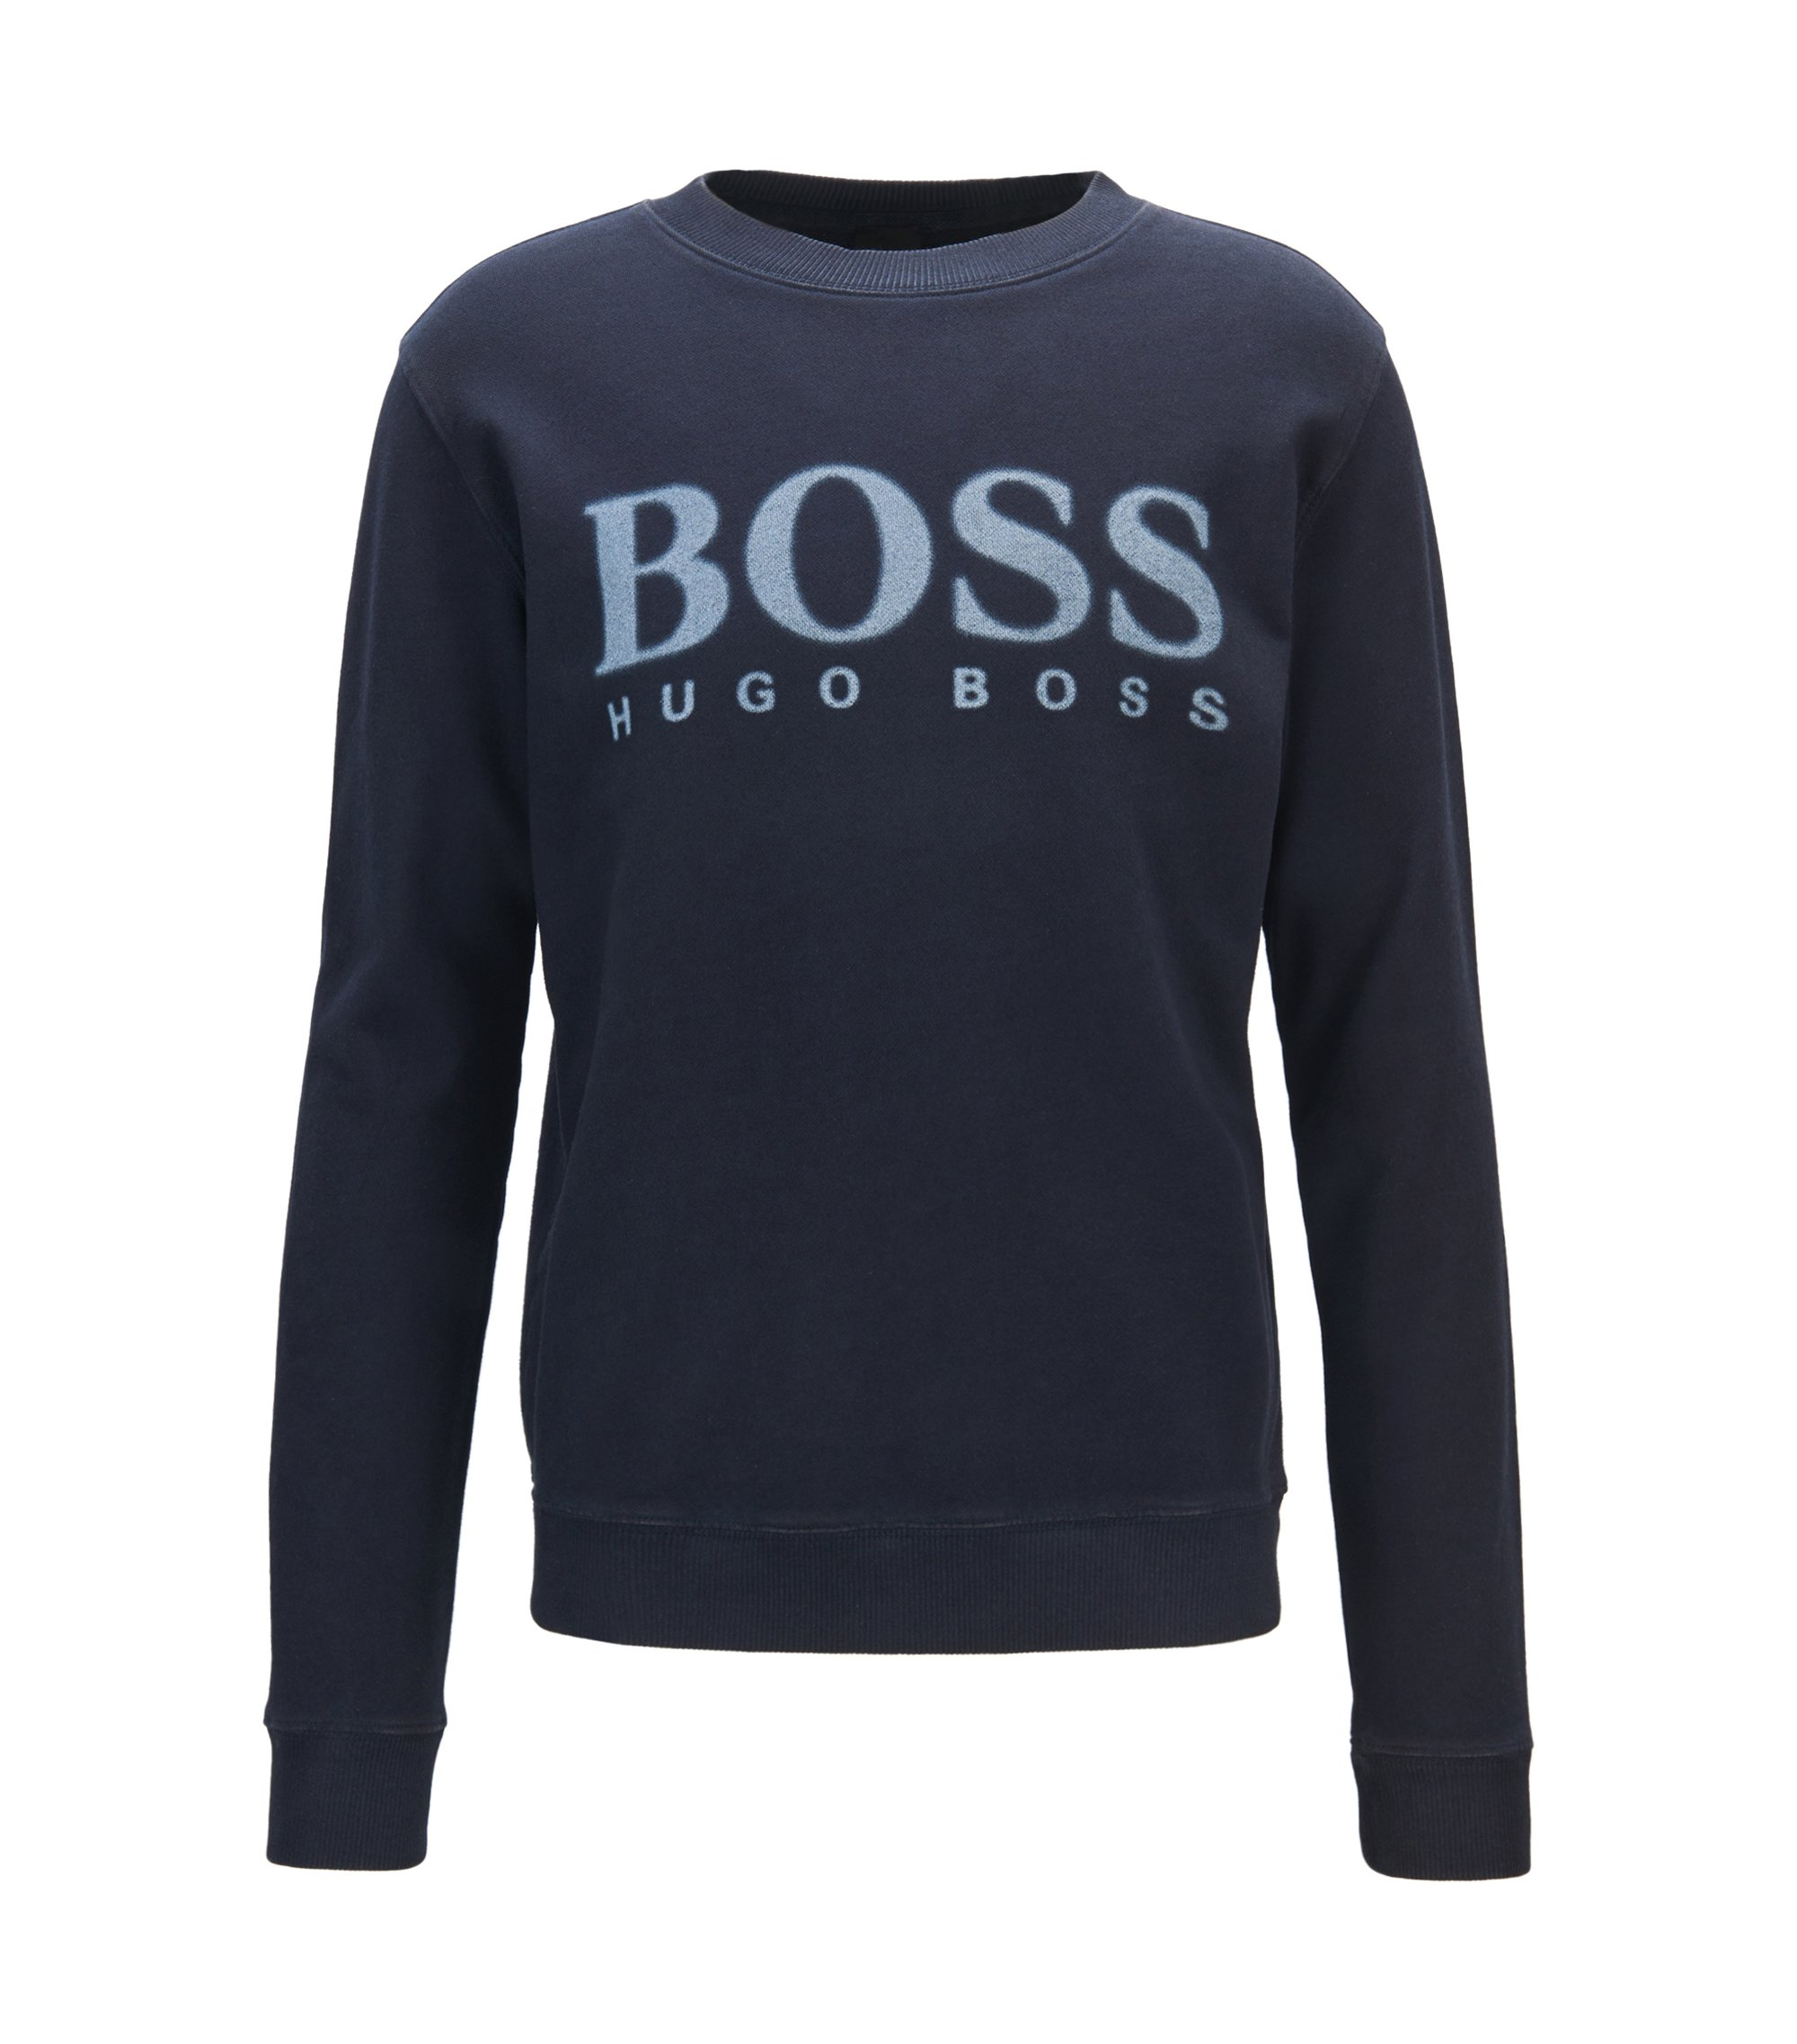 Maglione con logo in cotone french terry, Blu scuro